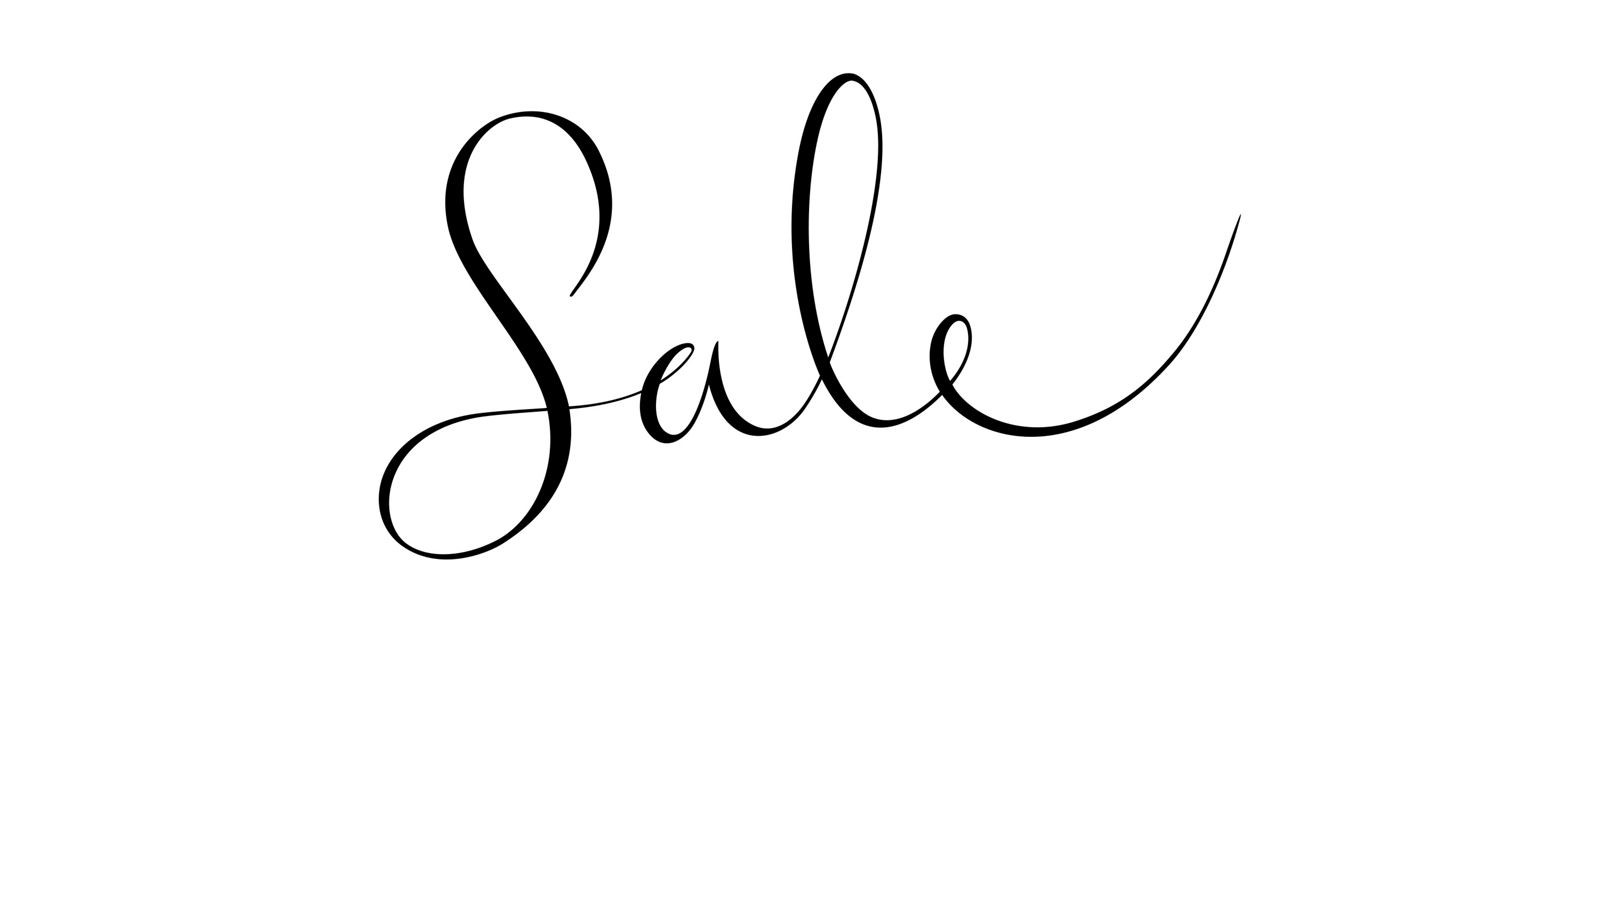 Bargain - Up to 50% OFF -  Men`s, Women`s, Kids` apparel, Shoes & Accessories @ Burberry